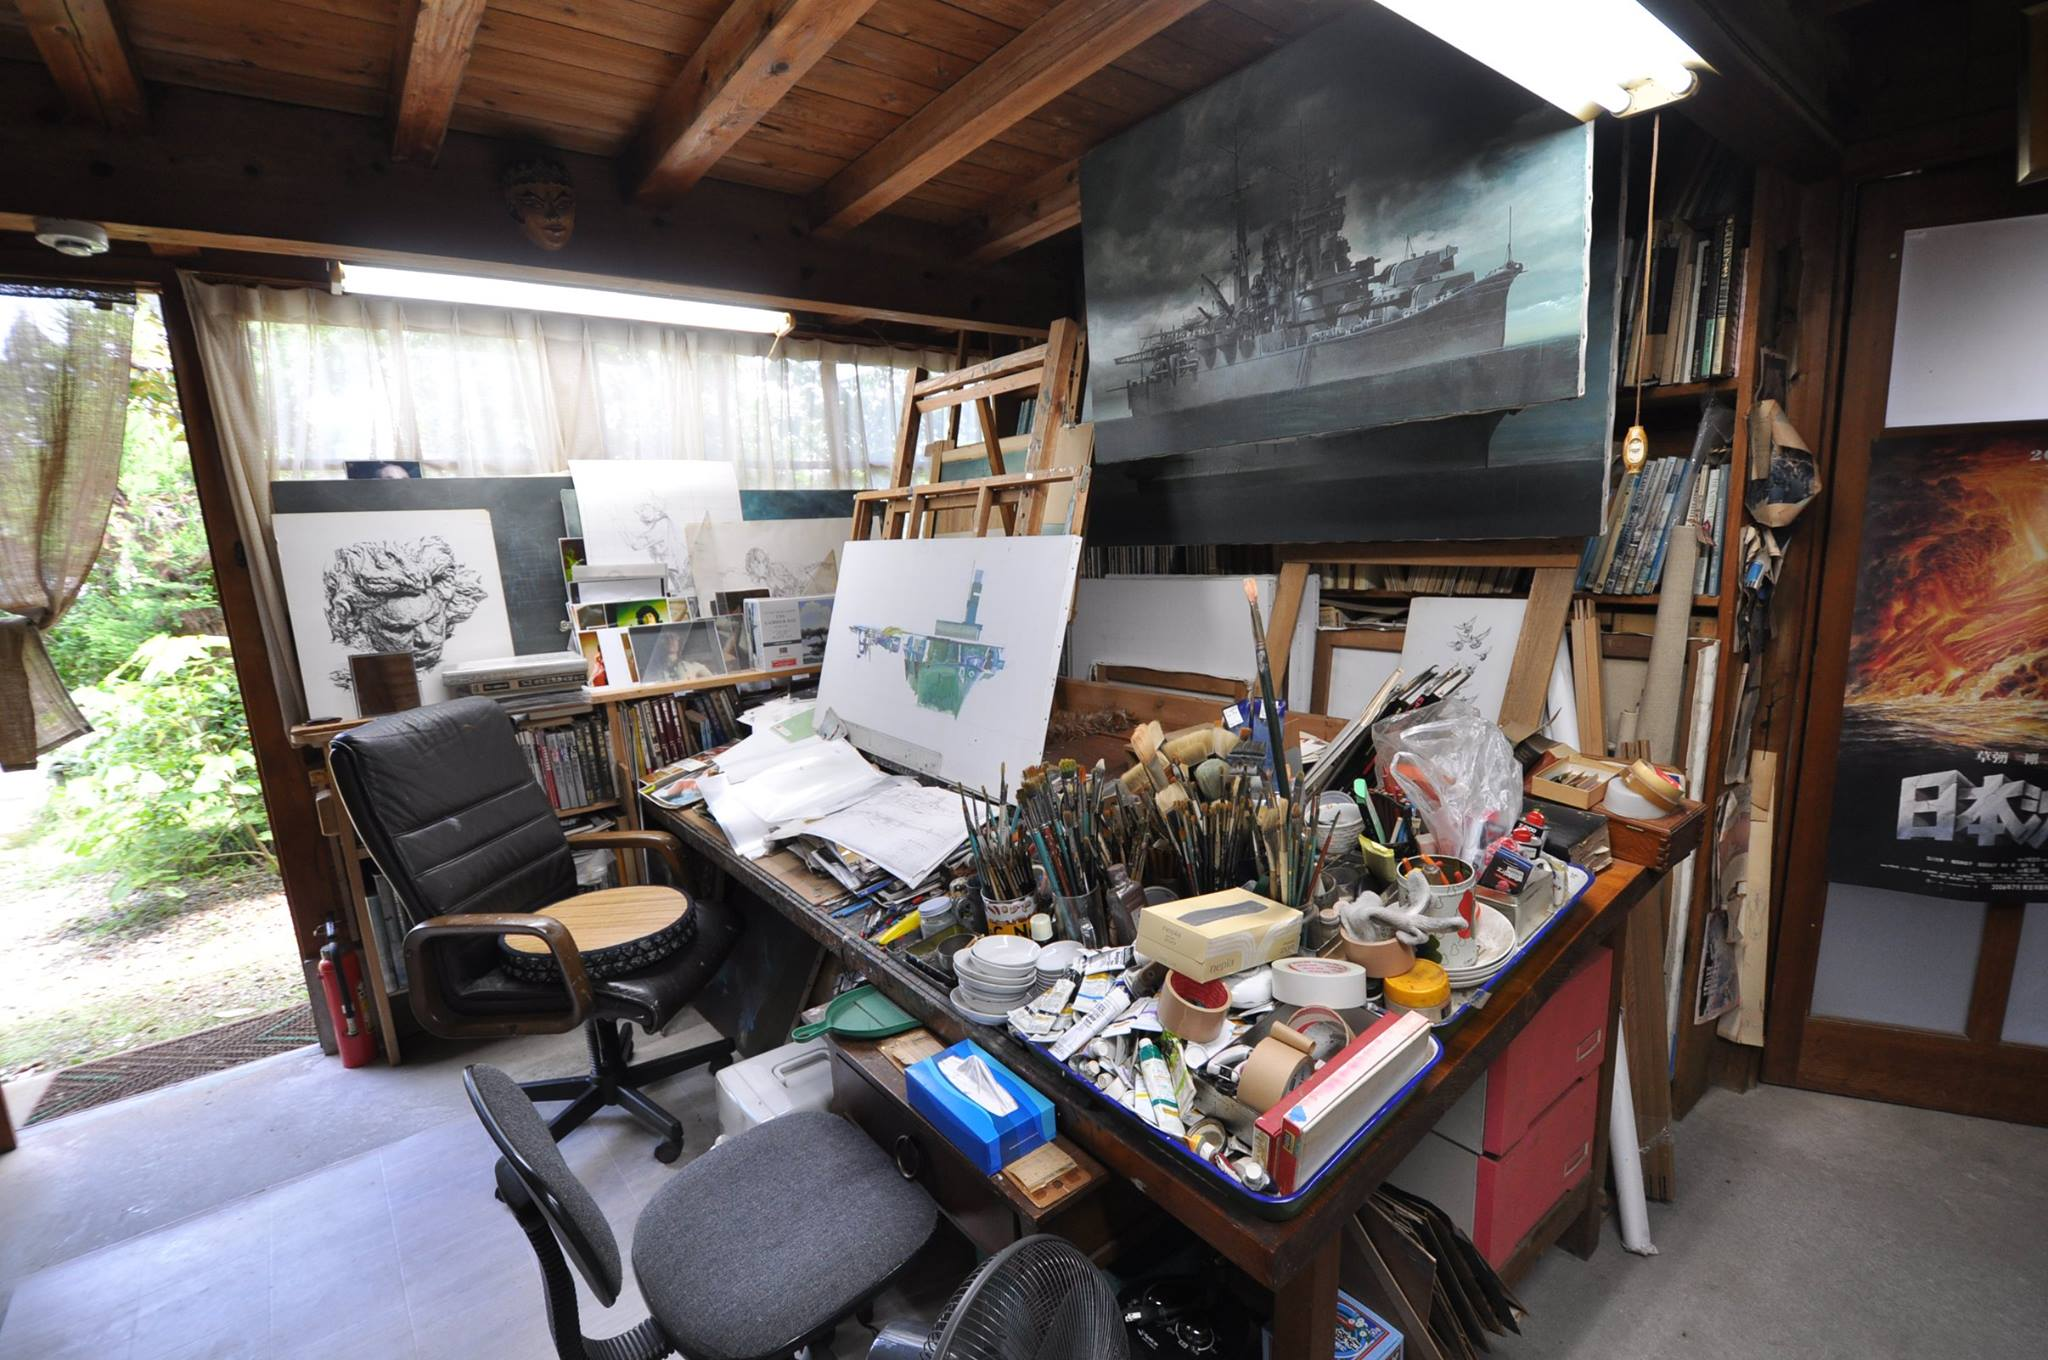 A view inside Ohrai's studio in Miyazaki. This photo was on display in the exhibition and I've taken this from the Facebook page for the exhibition.